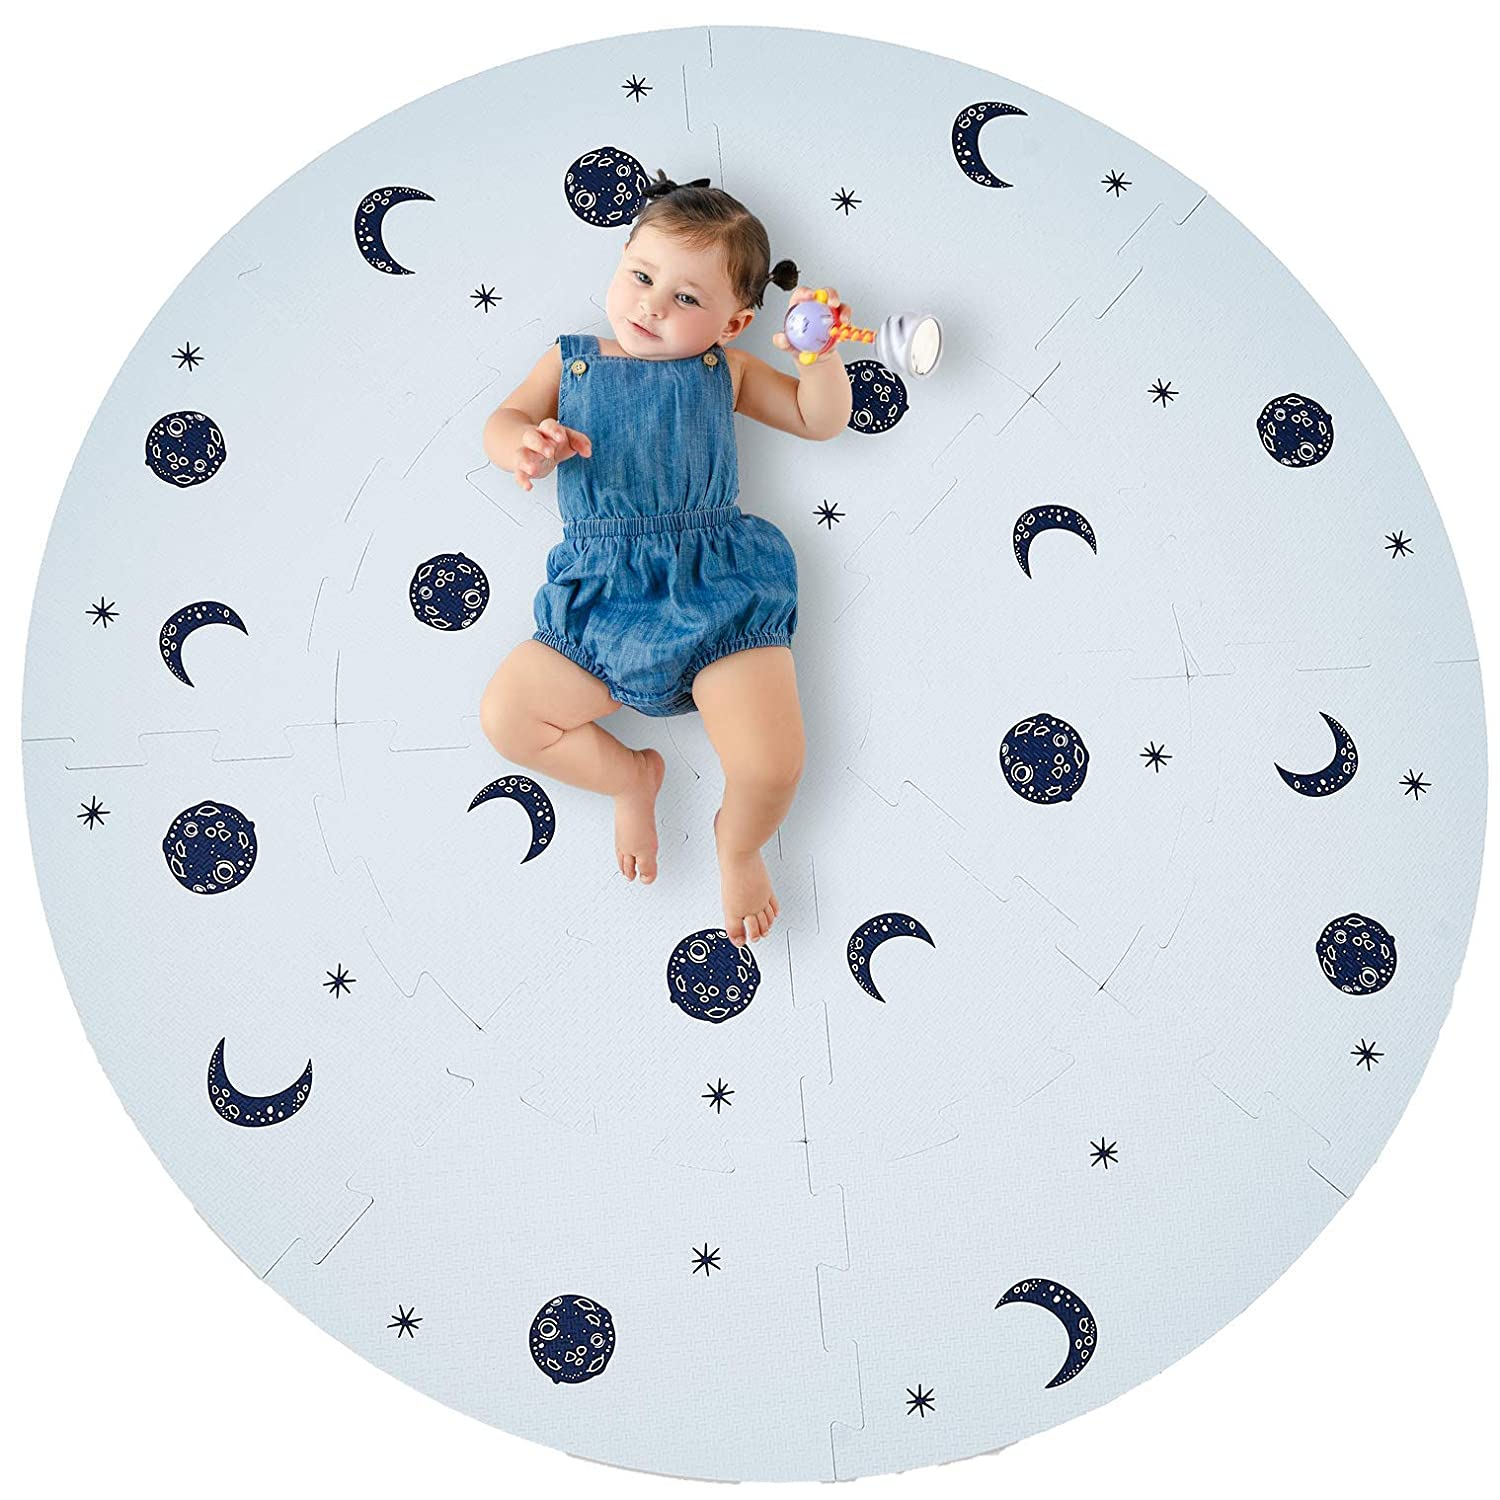 Stylish Extra Large Baby Play Mat Soft Playmat, Thick Comfortable Foam. Circle Floor Tiles with Edges for Babies. Non-Toxic, No Odors, Spill Resistant, Durable. 3 feet 7 inches Diameter